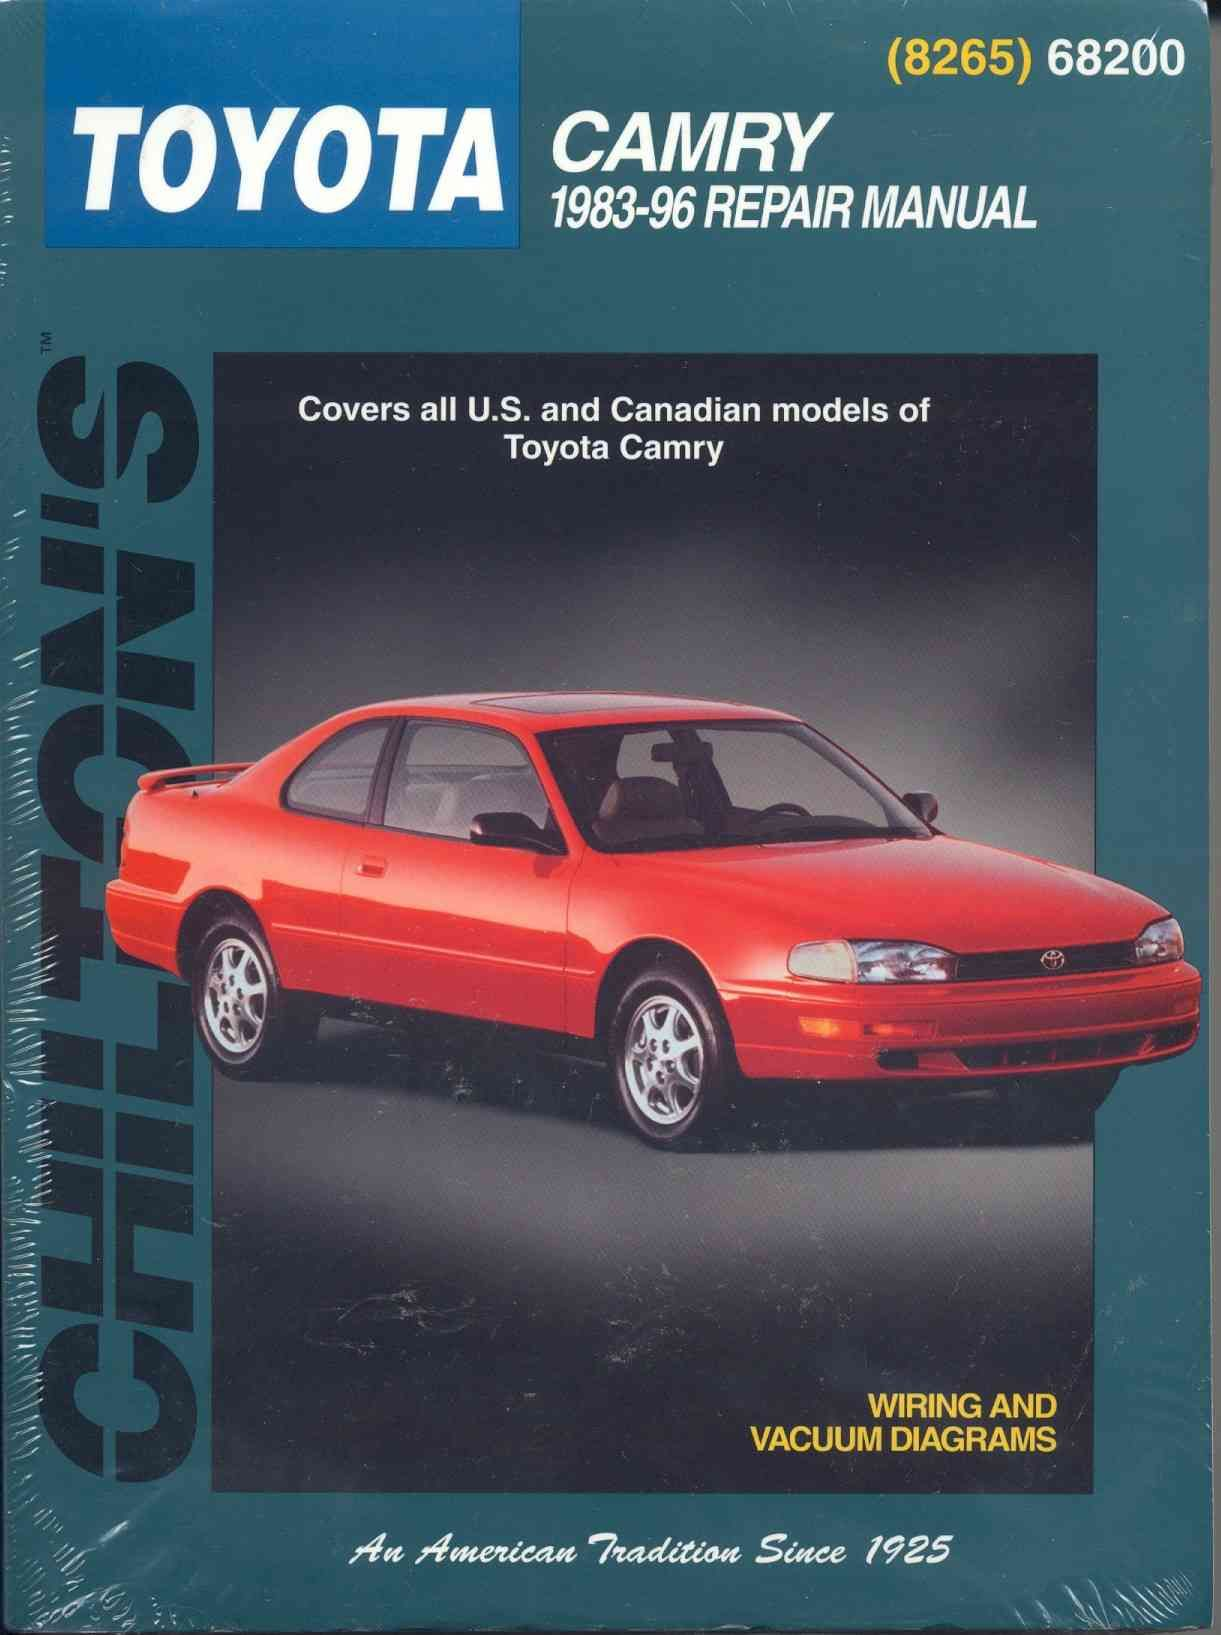 chilton s toyota camry 1983 96 repair manual toyota pinterest rh pinterest com haynes toyota camry repair manual download chilton's toyota camry 1997-01 repair manual